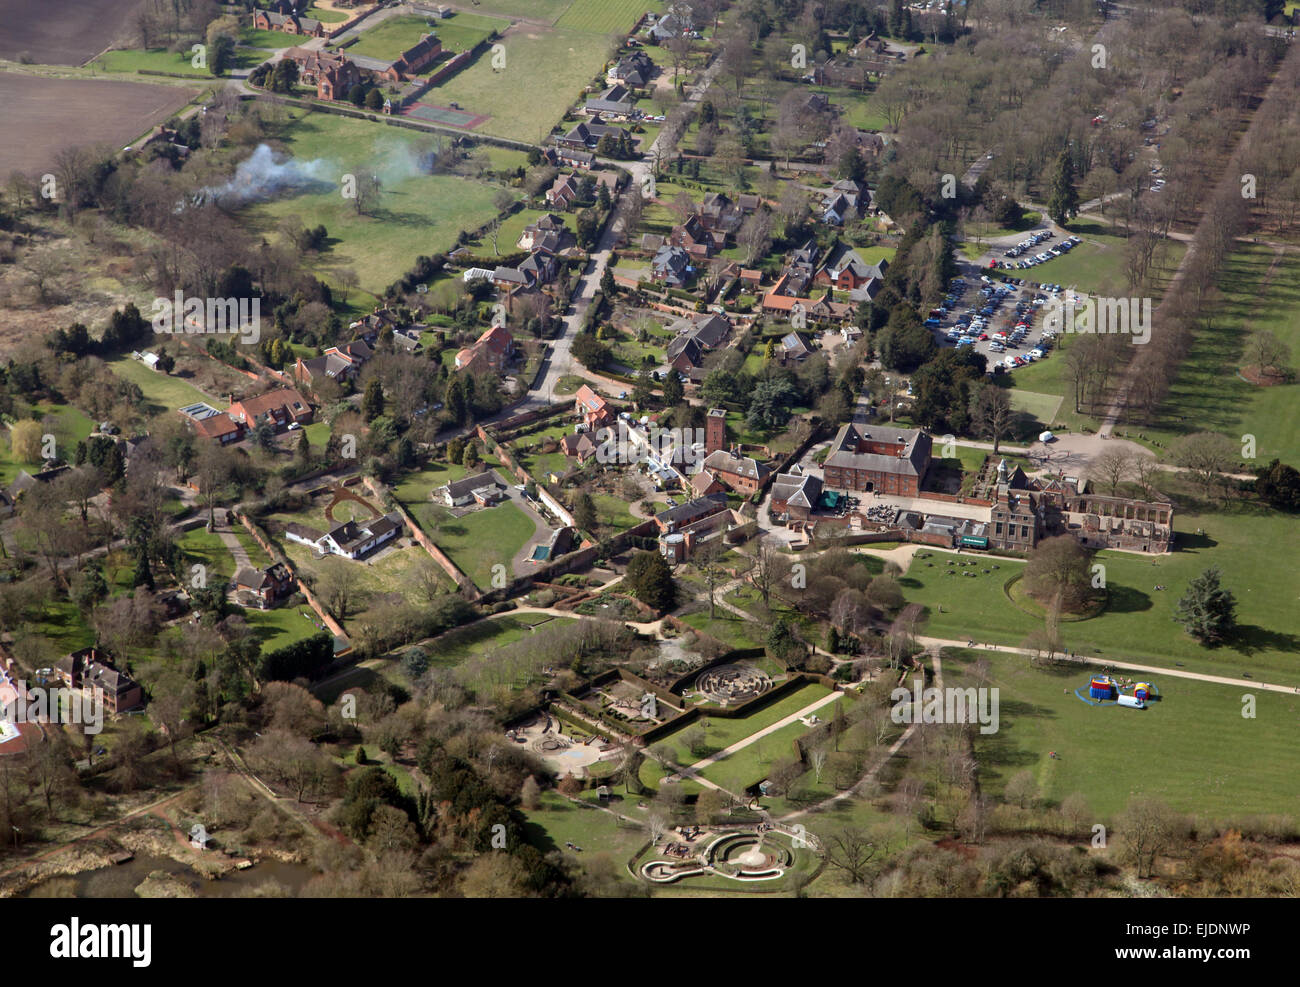 aerial view of Rufford village in Nottinghamshire, UK - Stock Image